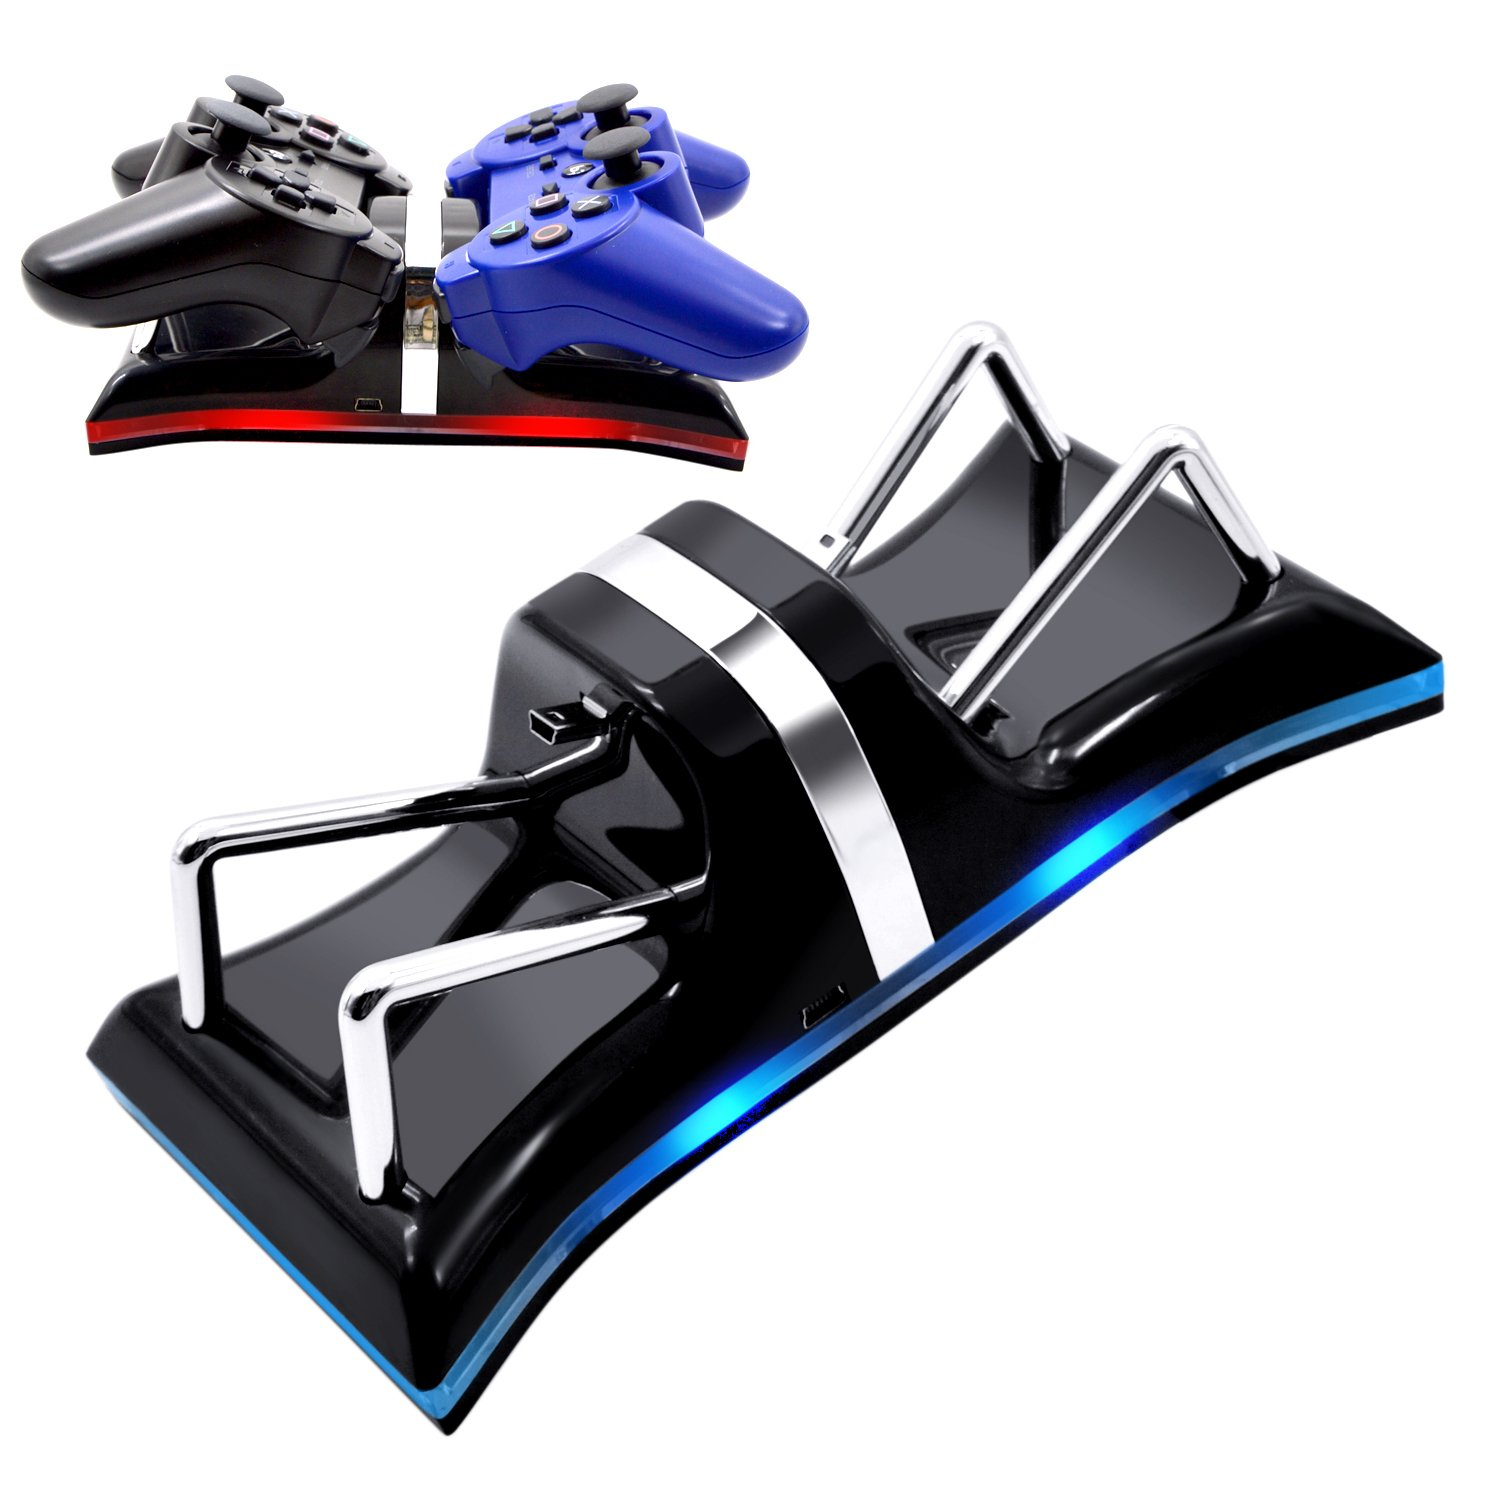 AZFUNN PS3 Controller Charging Station, Dual Charging Dock Stand with Surrounded LED Indication Lights for Sony PlayStation PS3 Controller, Black by AZFUNN (Image #1)